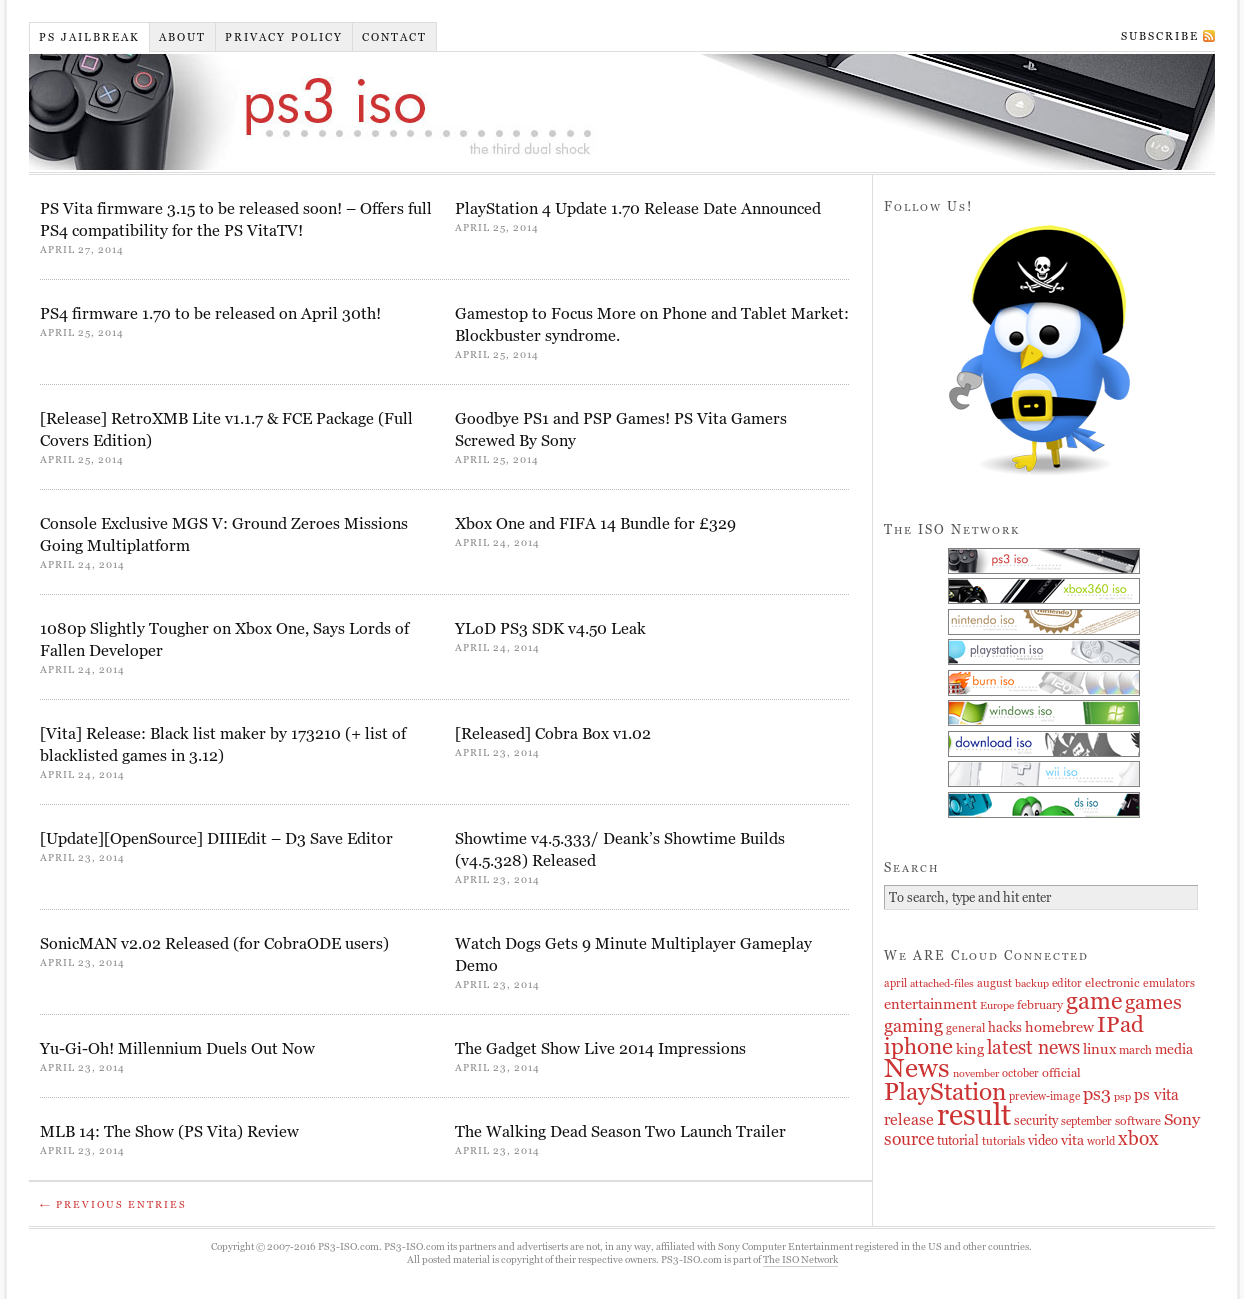 Ps3-iso com  Ps3-iso com Its Partners And Advertiserts Are Not, In